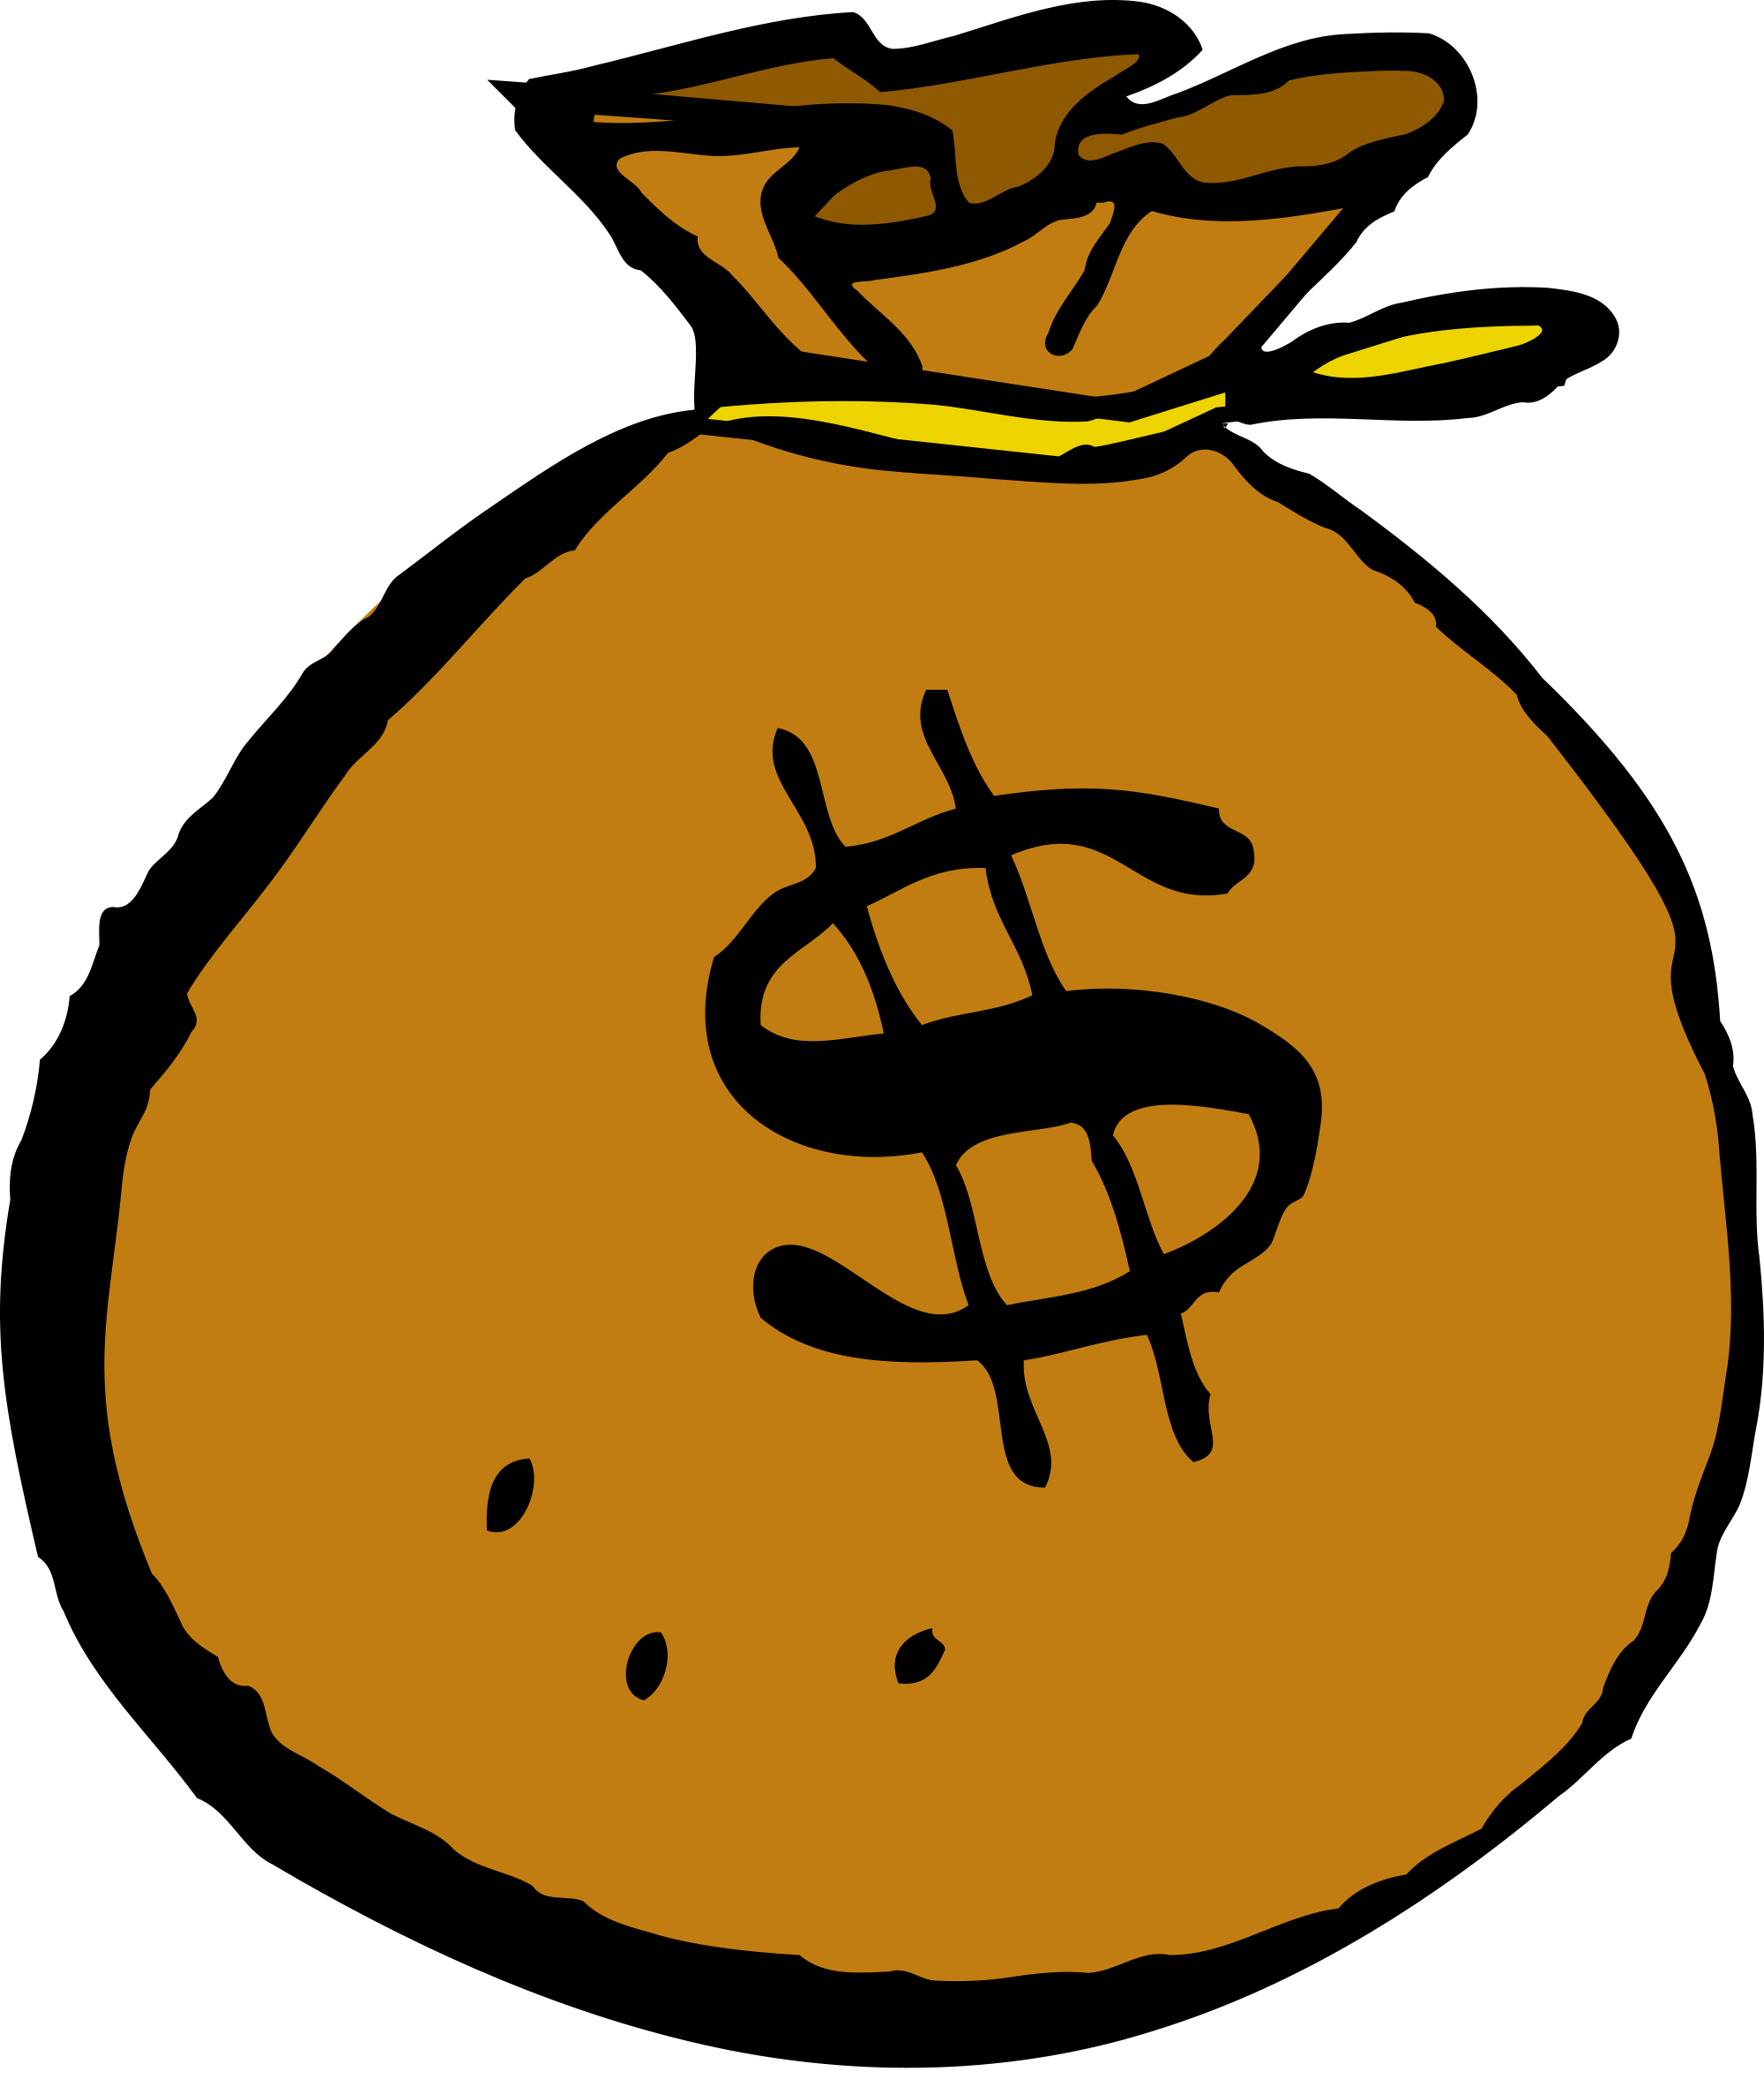 Free clipart for the love of money clipart royalty free Free Money Bag Picture, Download Free Clip Art, Free Clip Art on ... clipart royalty free